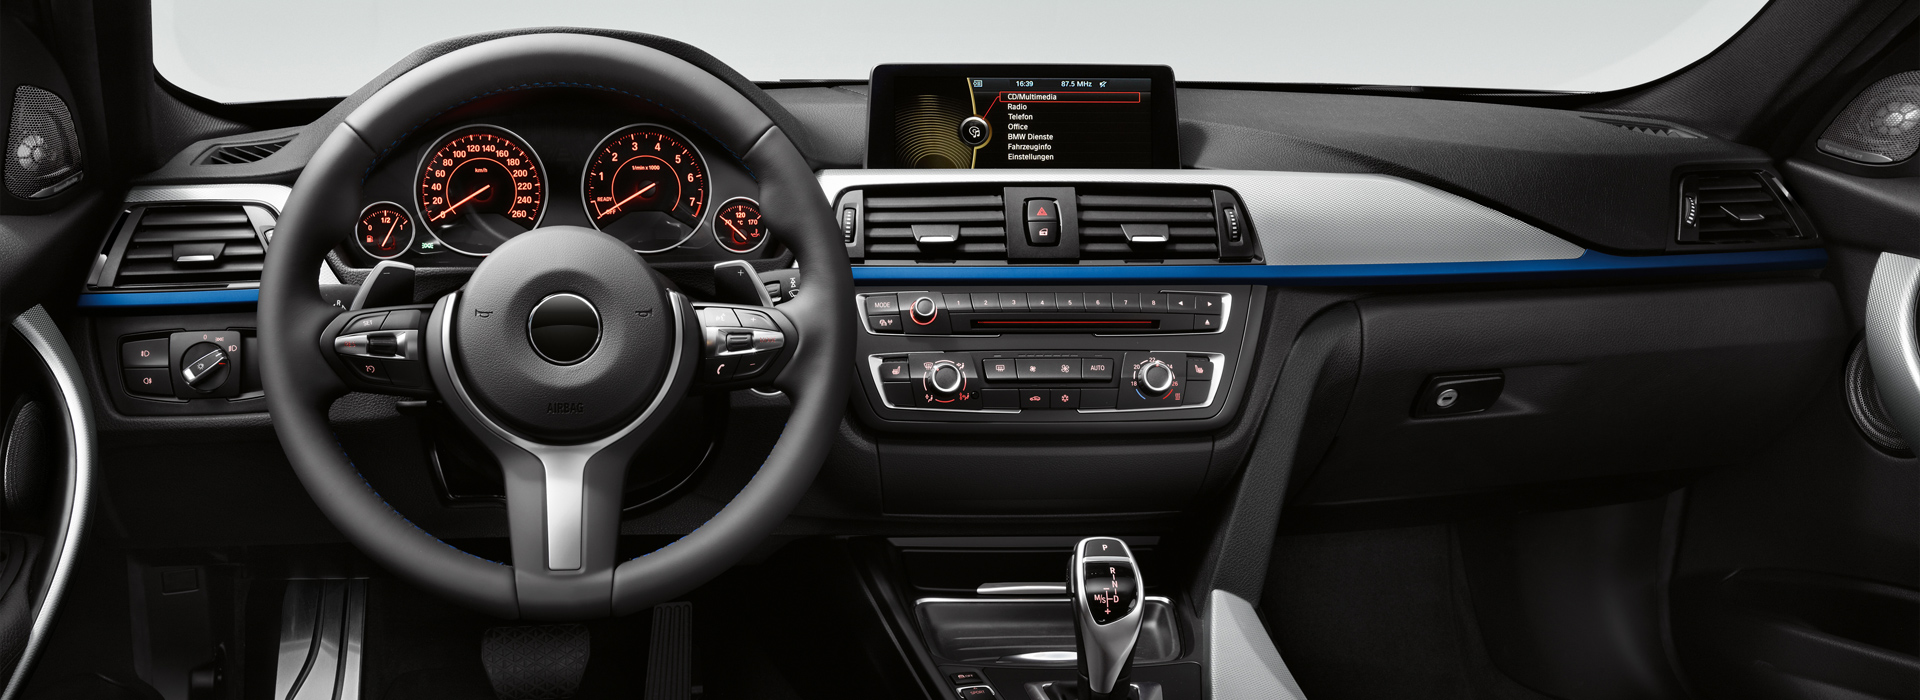 Auto Gravity Car Navigation and Entertainment System